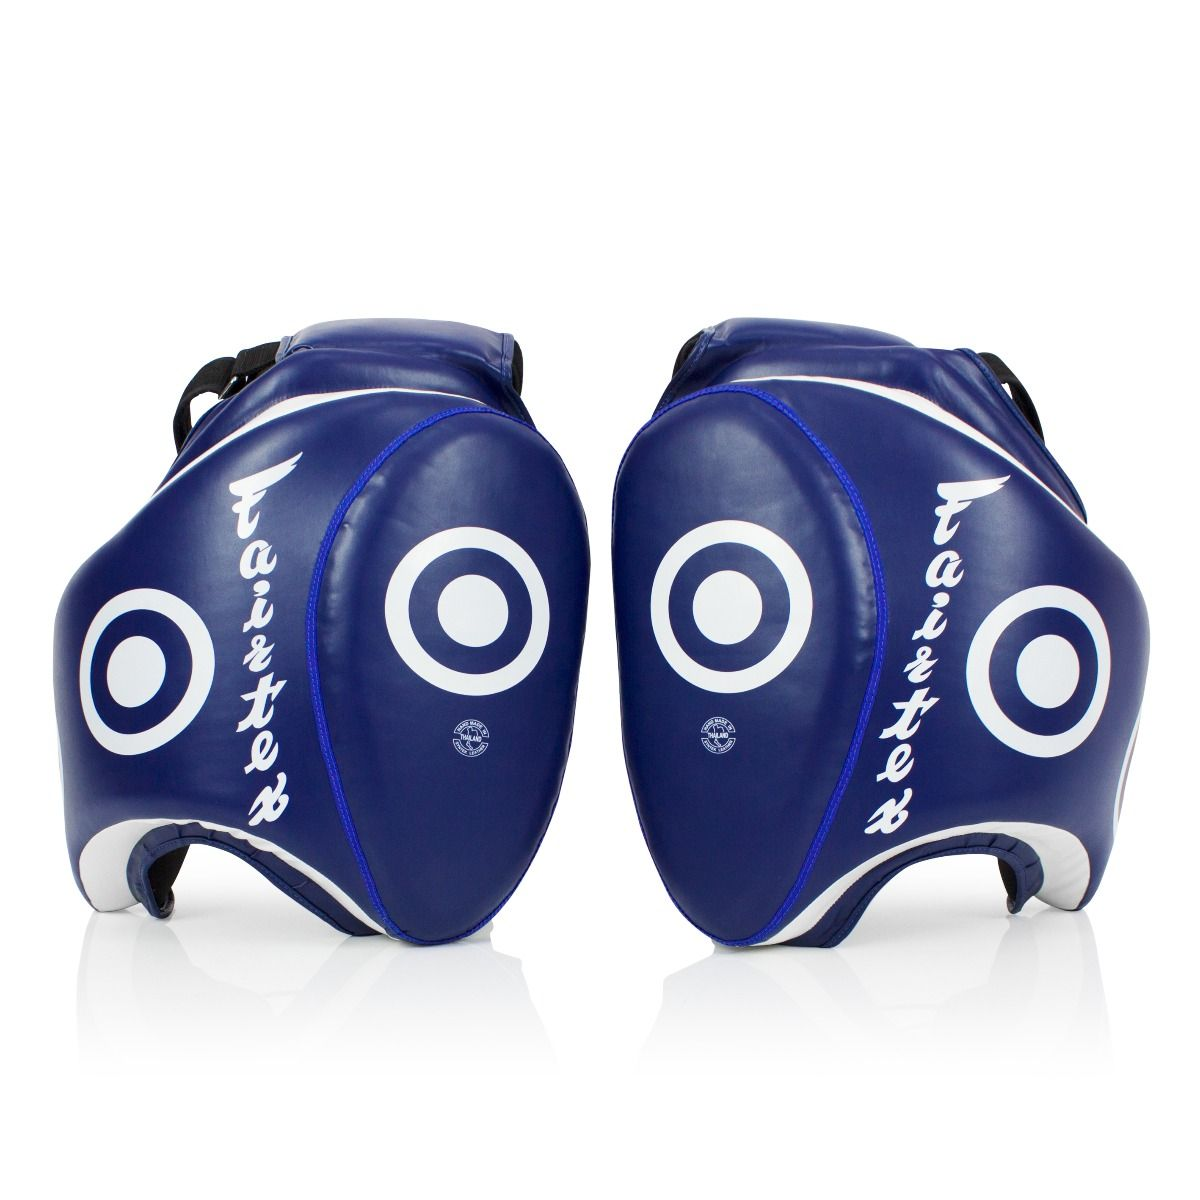 Fairtex TP3 Thigh Pads - Fairtex Store